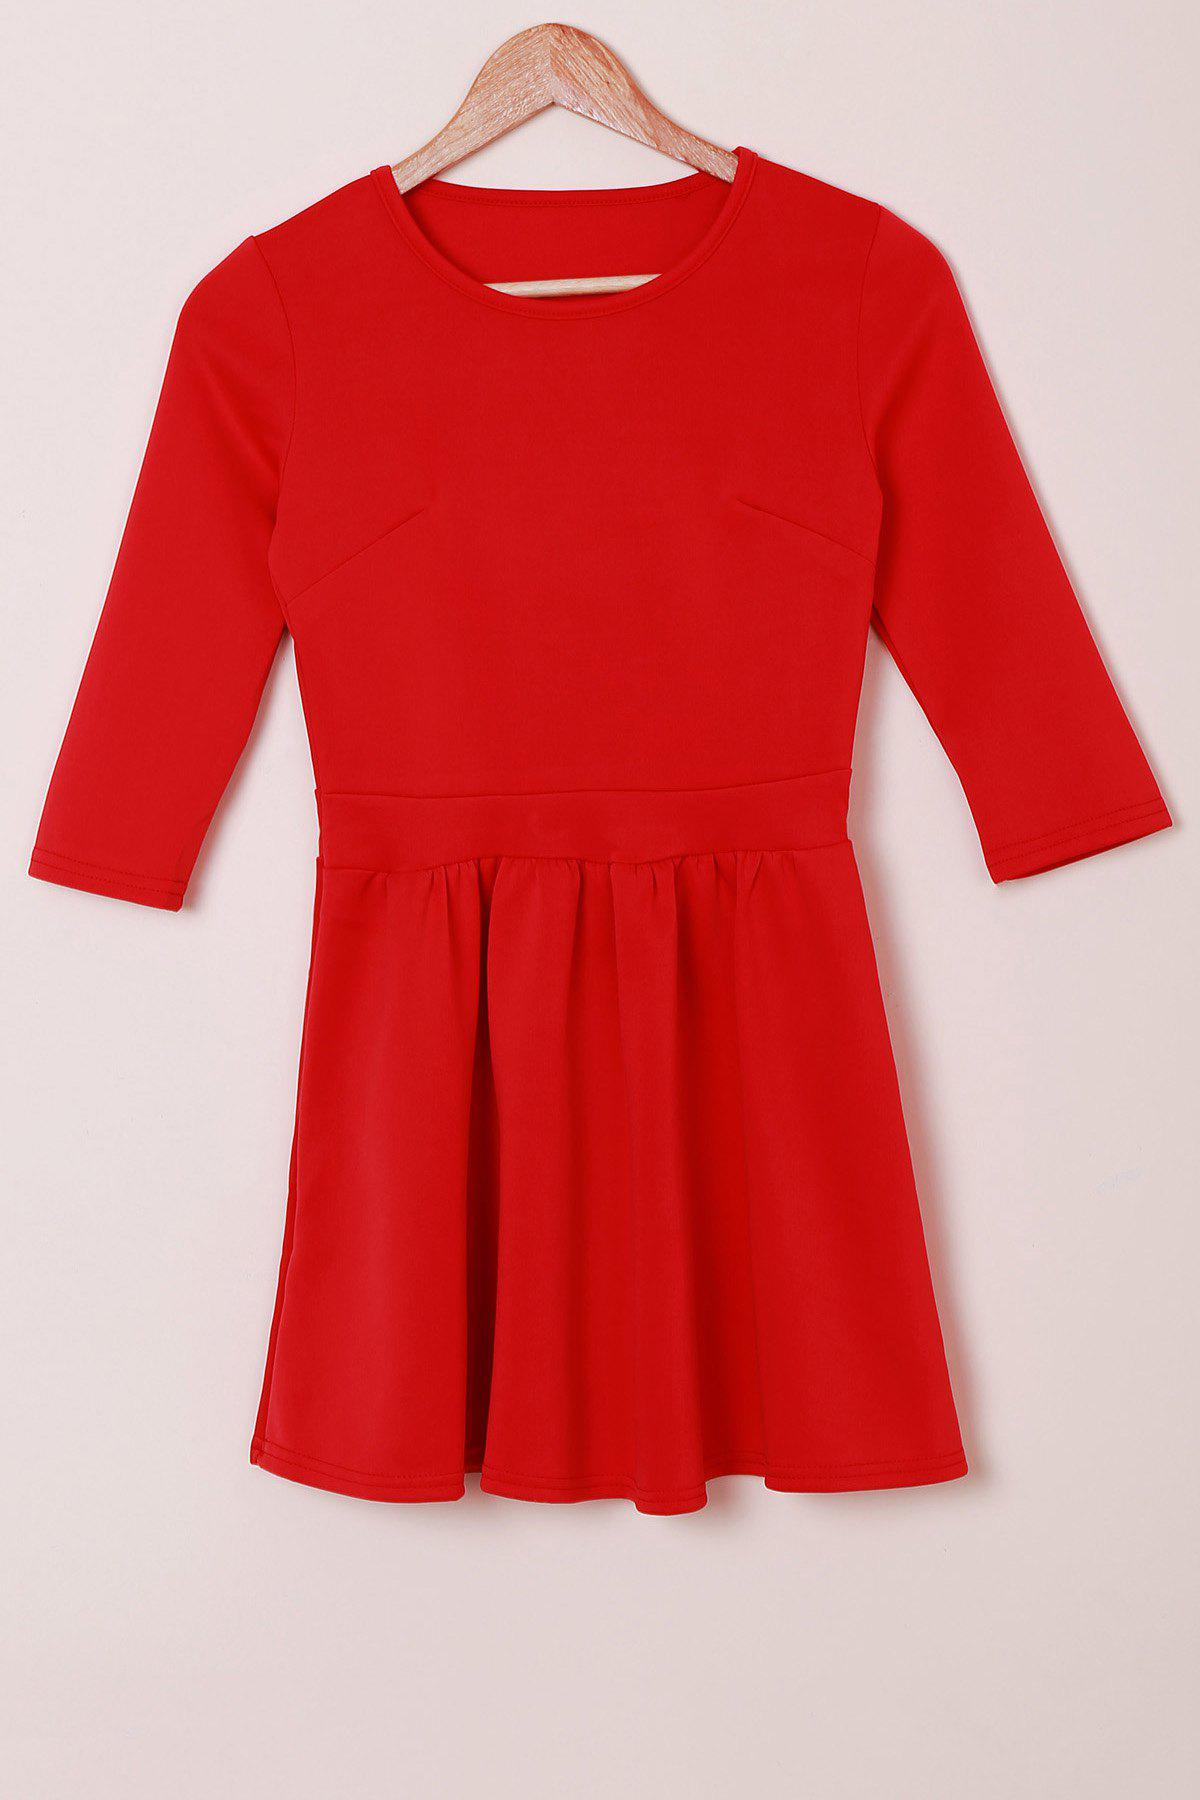 Discount Sweet Jewel Neck 3/4 Sleeve Solid Color High Waist Pleated Mini Dress For Women